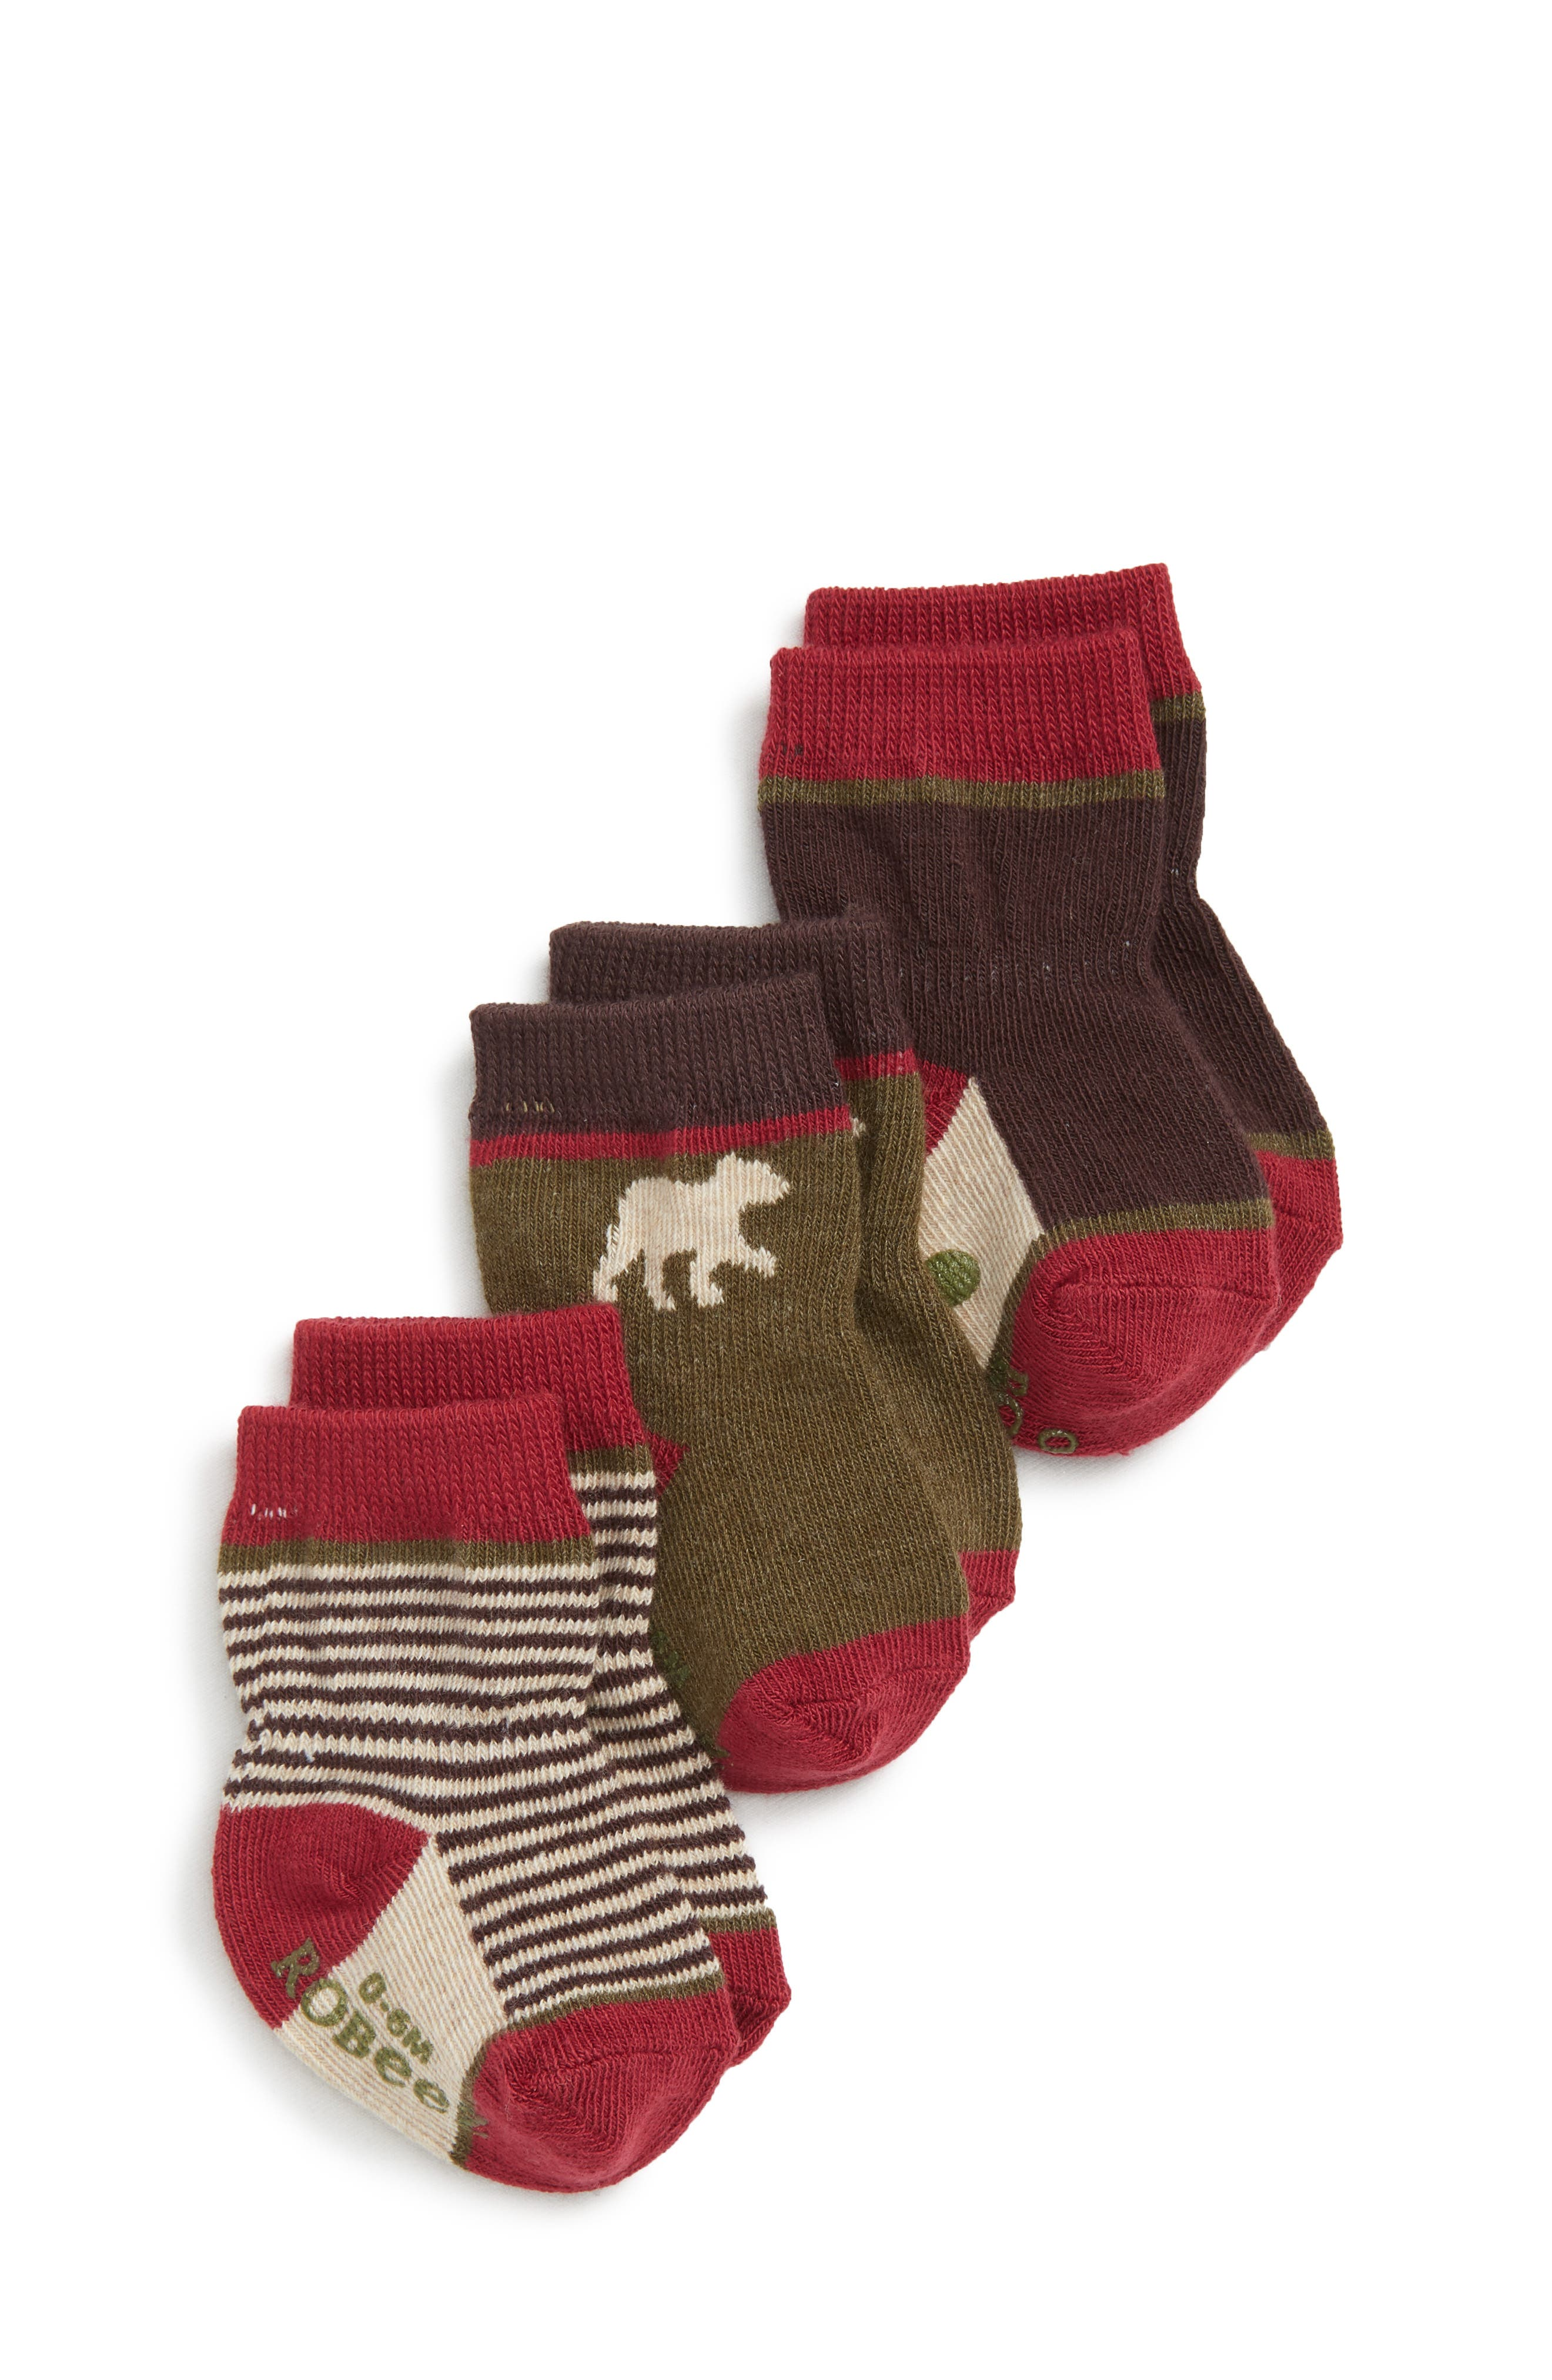 Forest Dweller 3-Pack Socks,                             Main thumbnail 1, color,                             RED/ BROWN